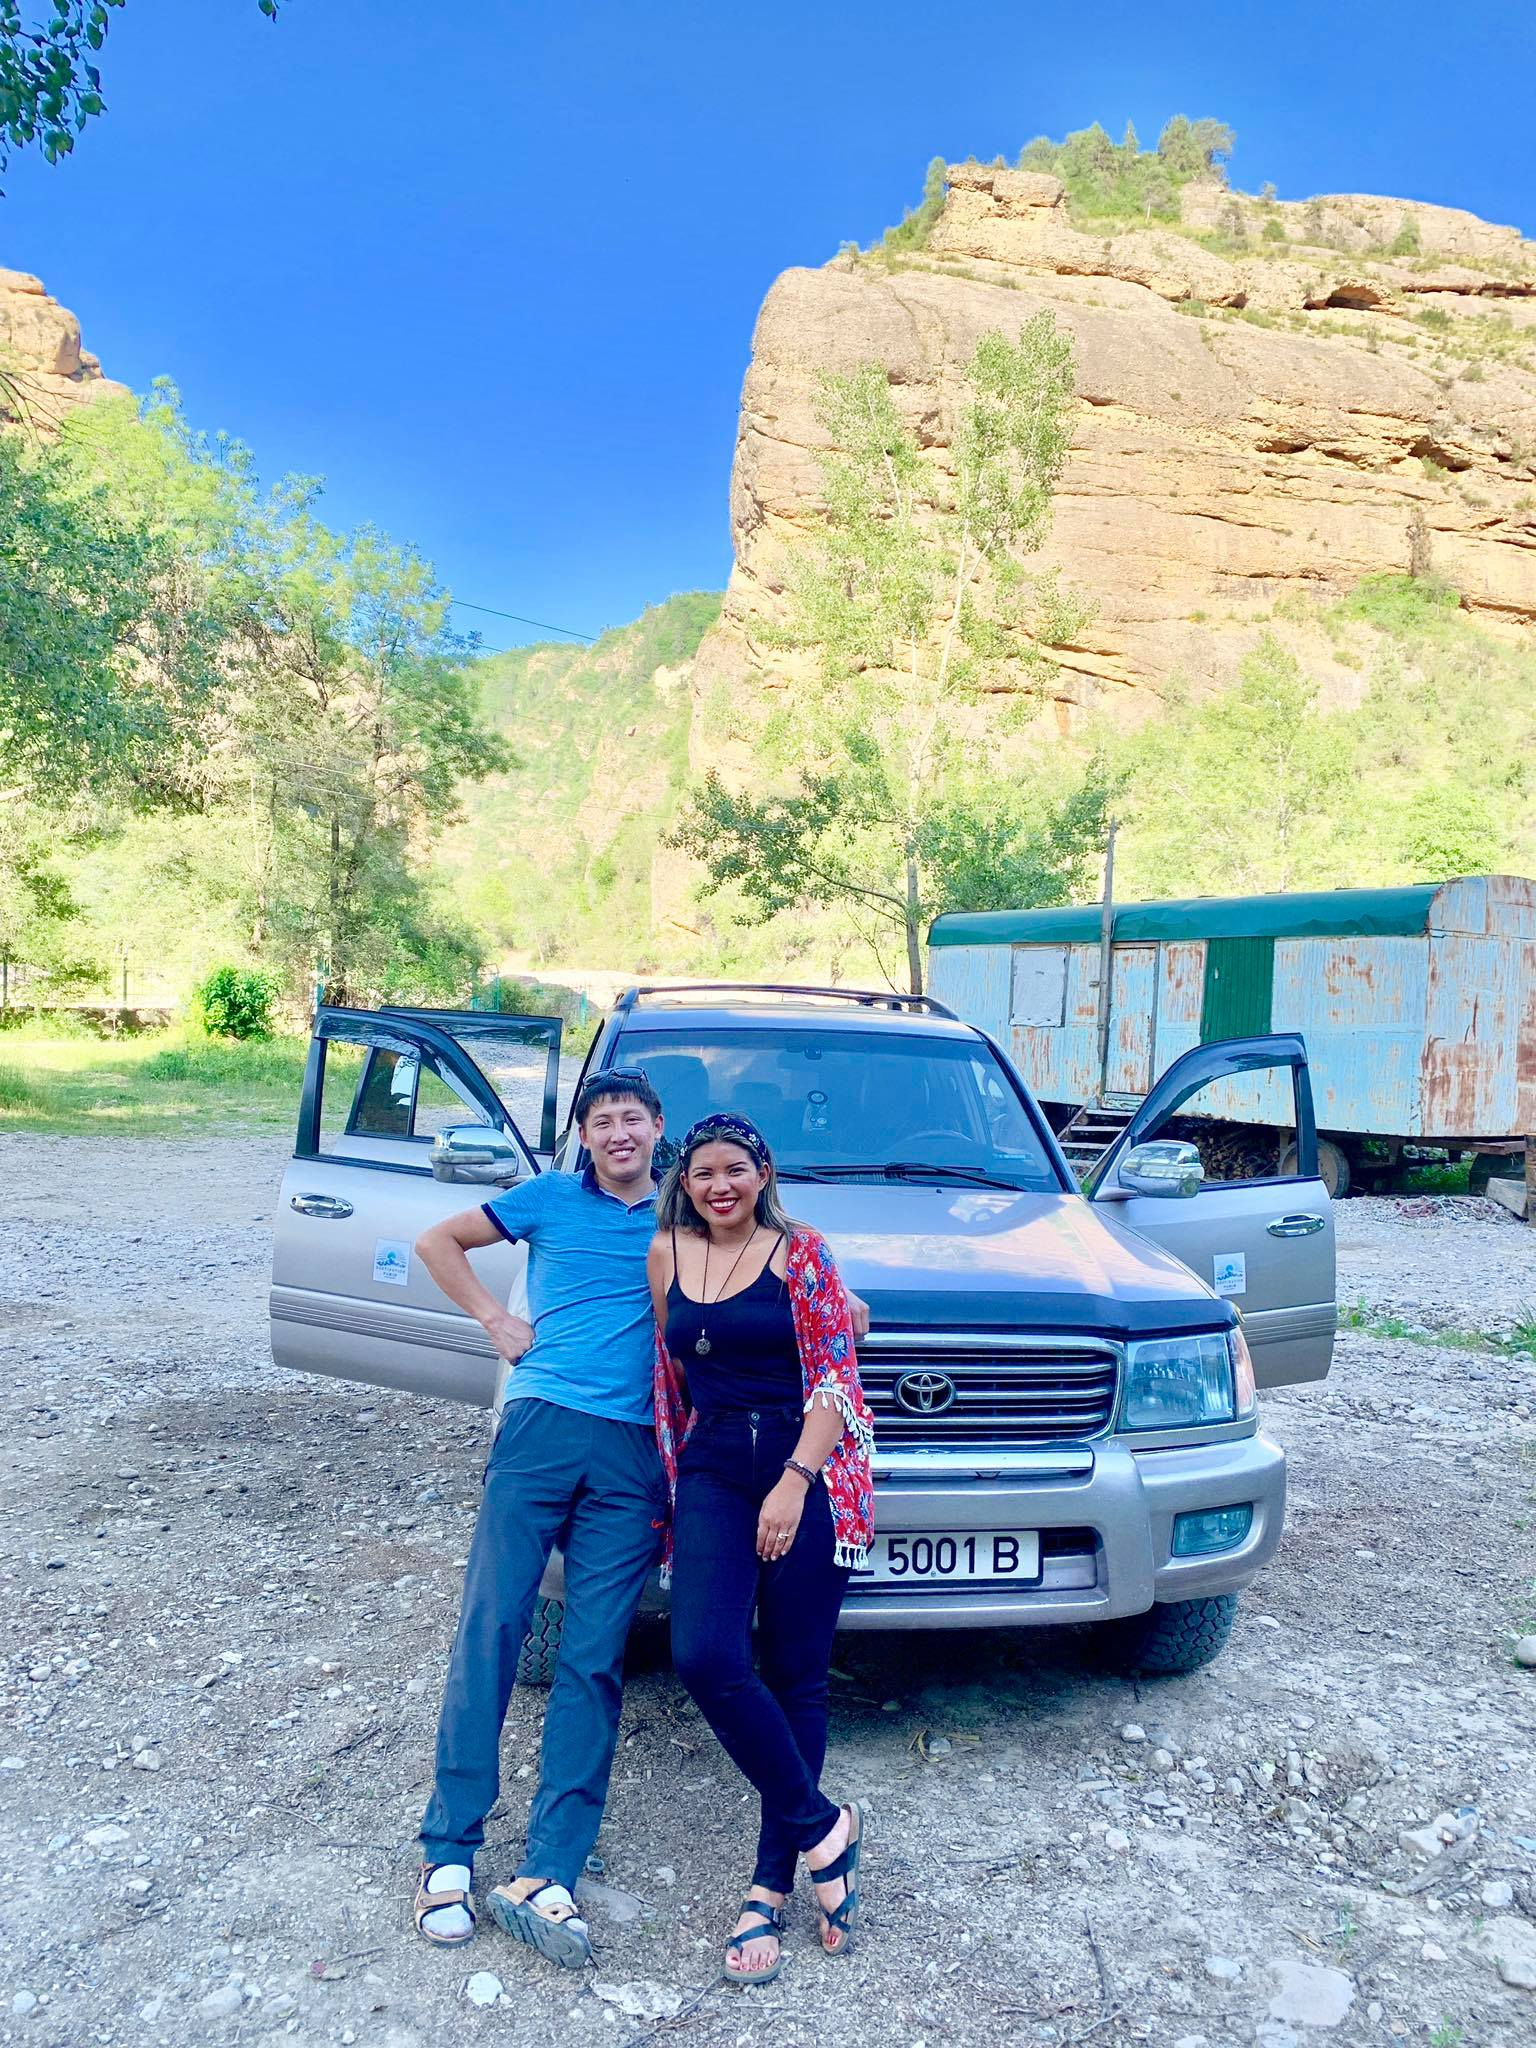 Kach Solo Travels in 2019 Roadtrip to Sary Chelek Lake which is 330 km. from Osh, Kyrgyzstan17.jpg